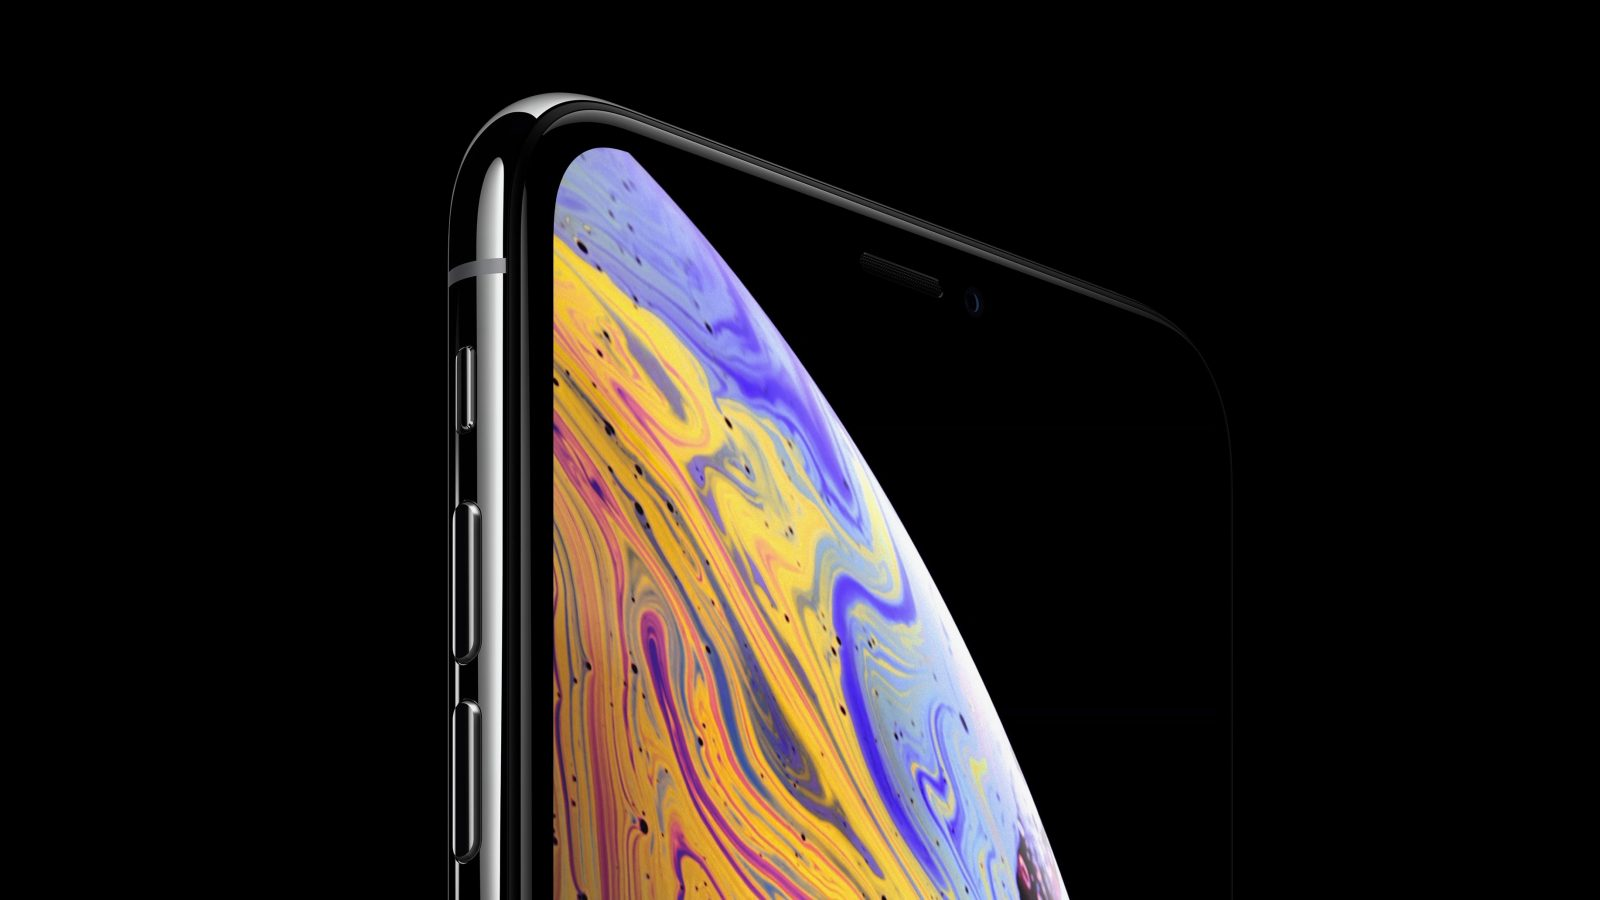 Download the new iPhone Xs and iPhone Xs Max wallpapers right here 1600x900